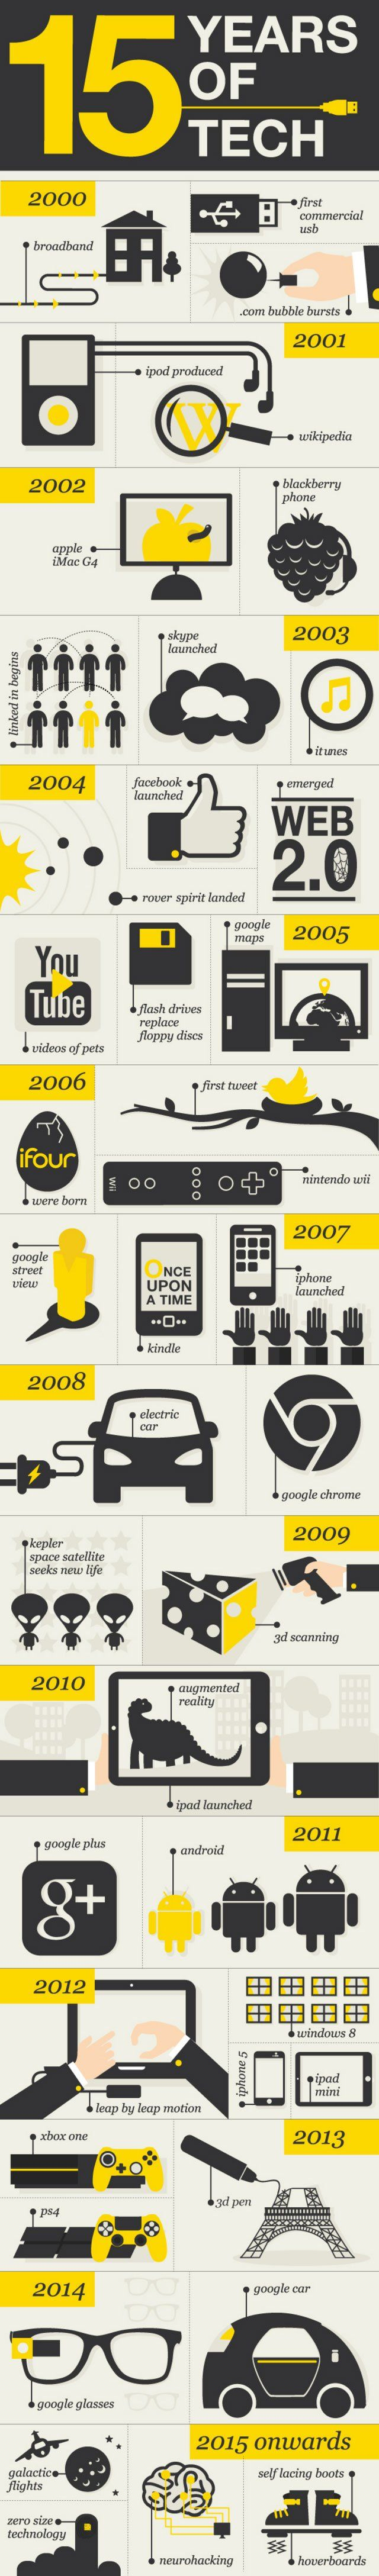 DailyInfographic 15-years-of-tech (1) Lots of changes in a relatively short period of time.